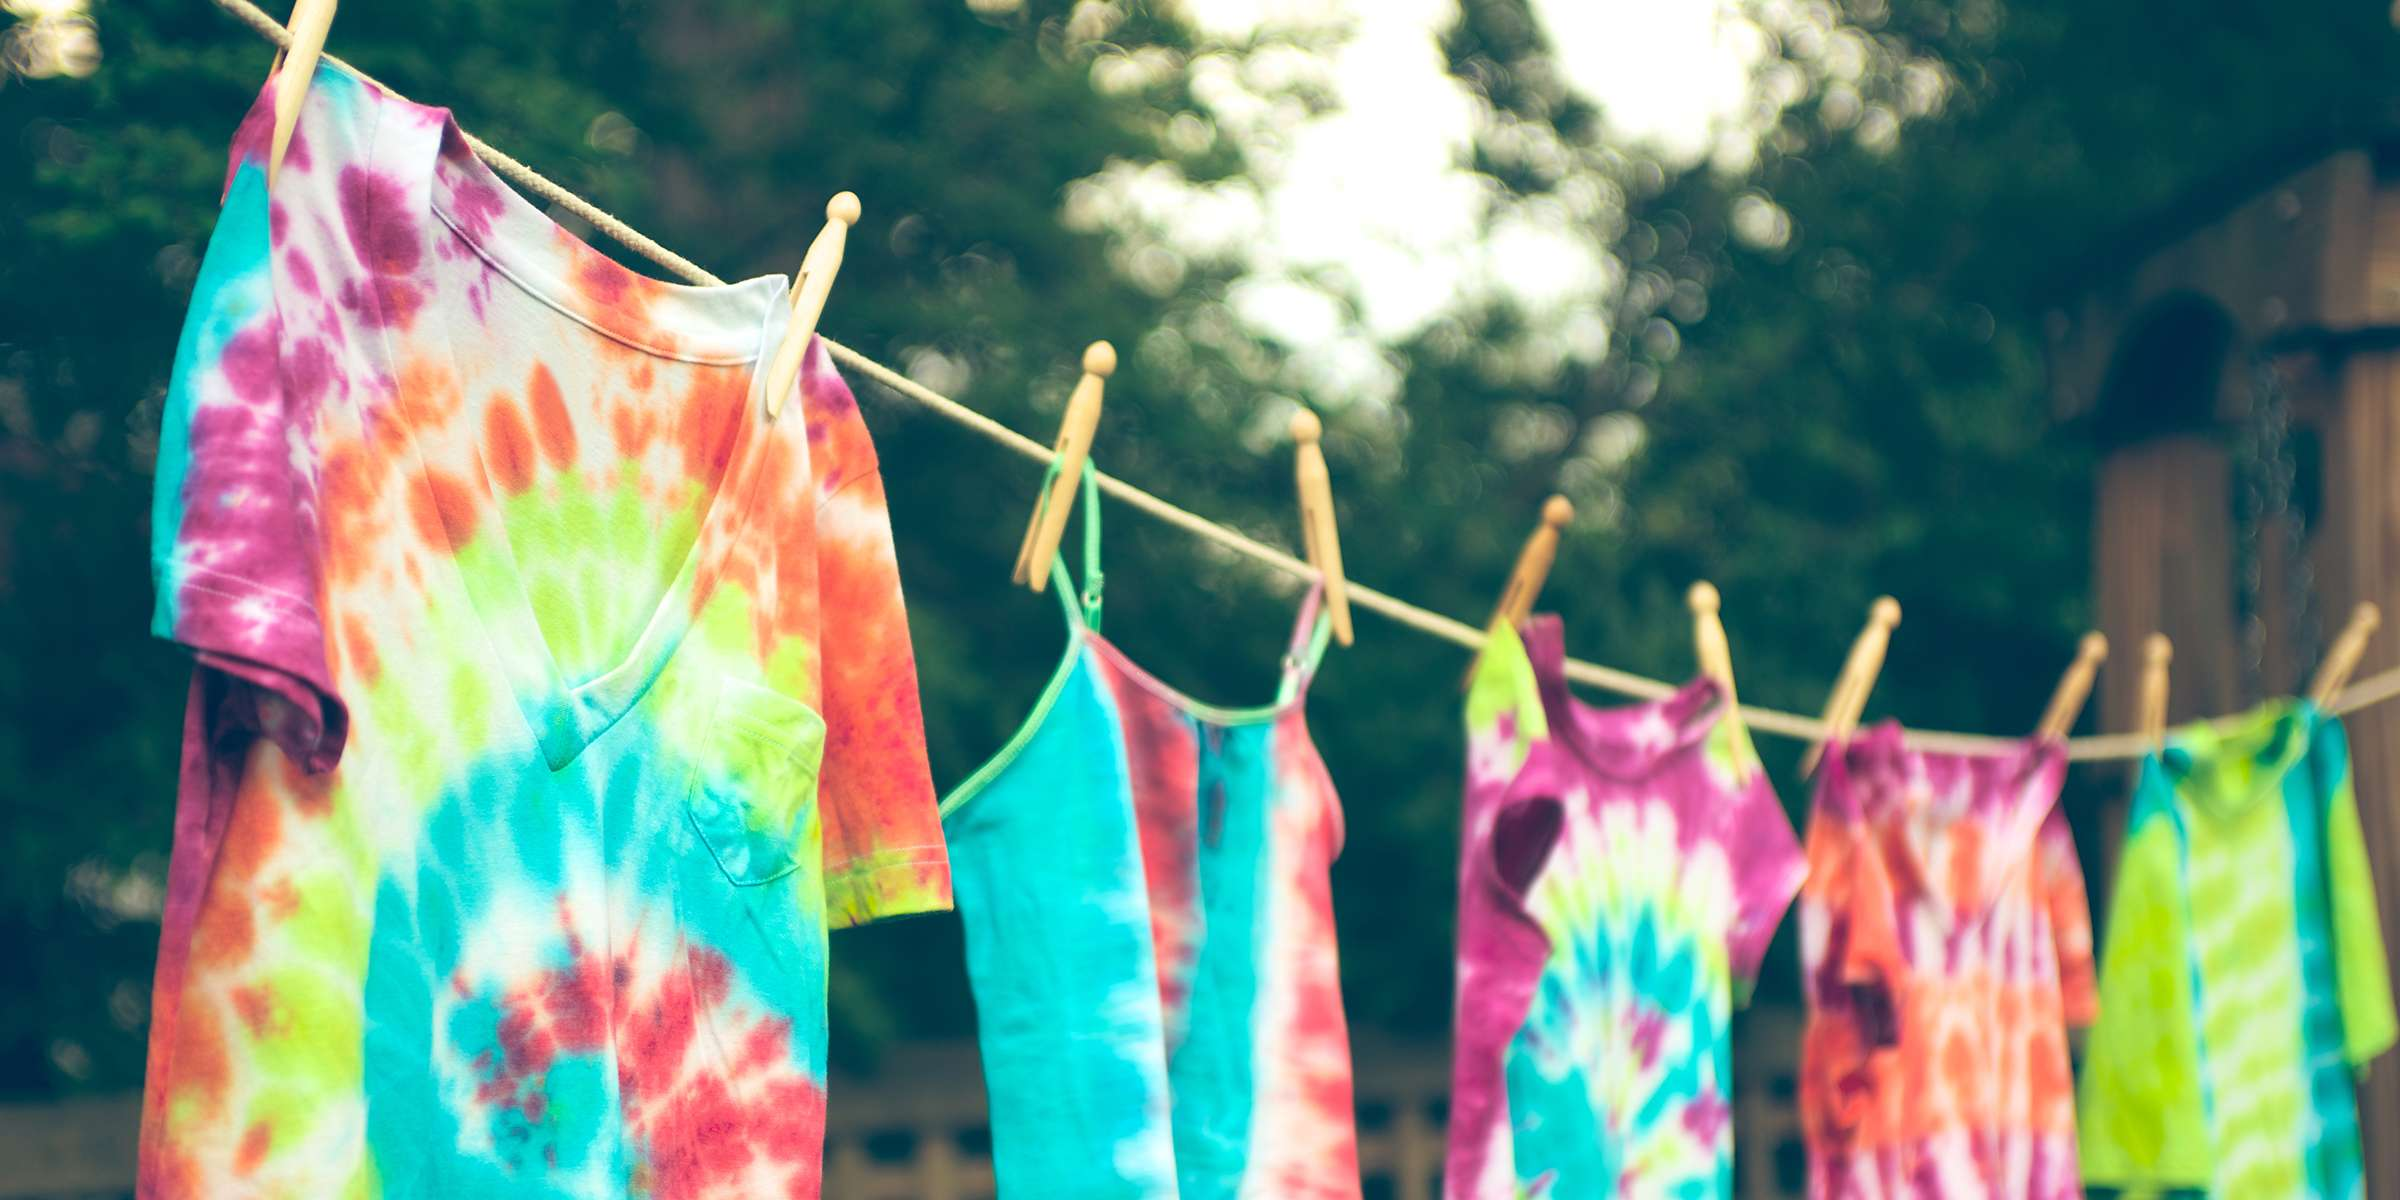 Groovy tie dyed tee shirts hanging from a clothes line